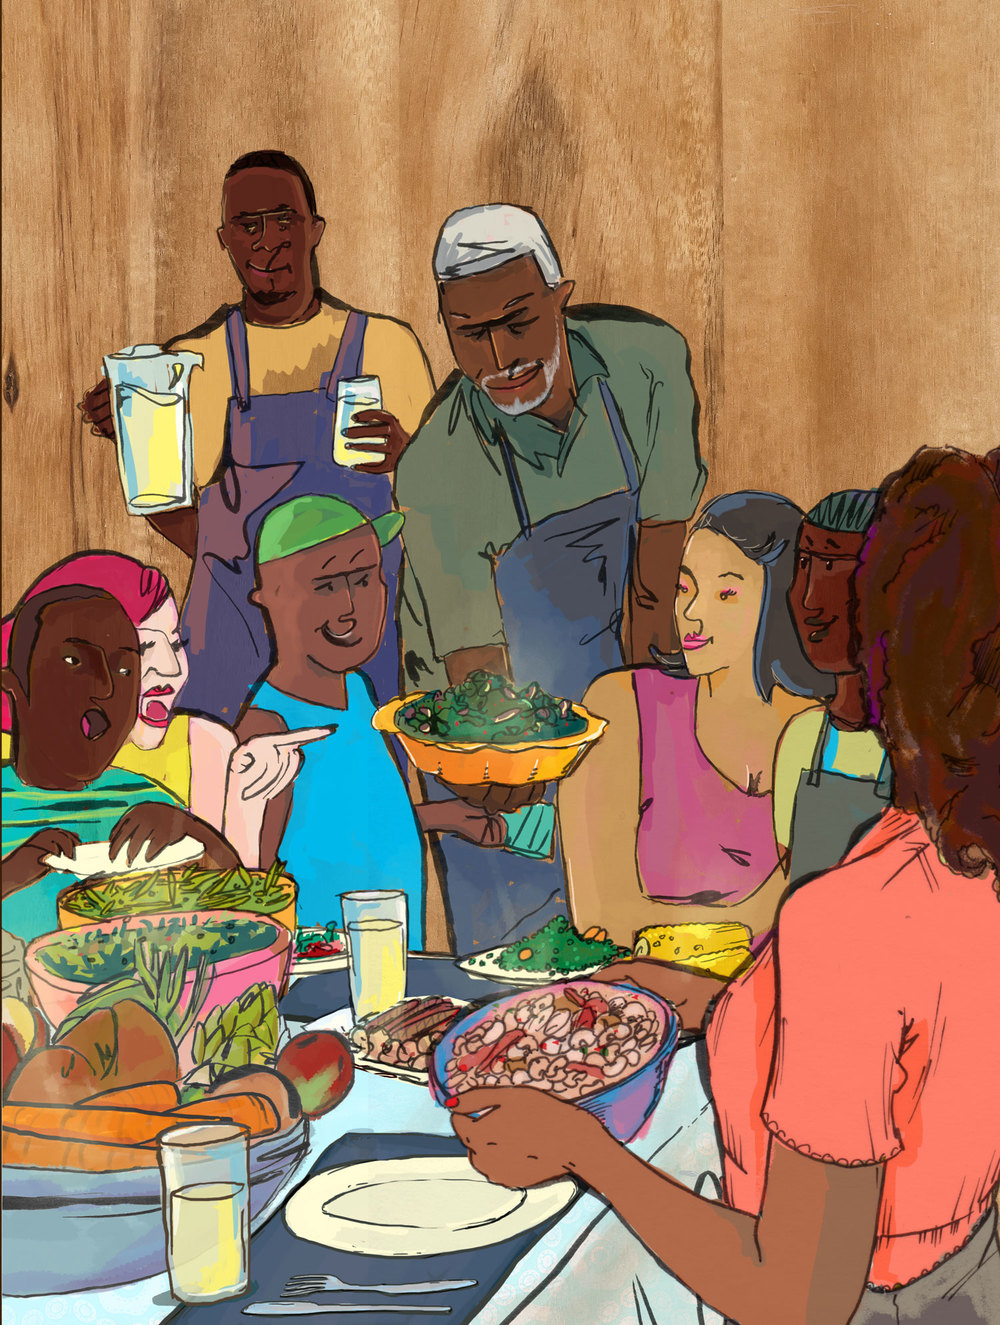 Image from Farmer Will Allen and the Growing Table